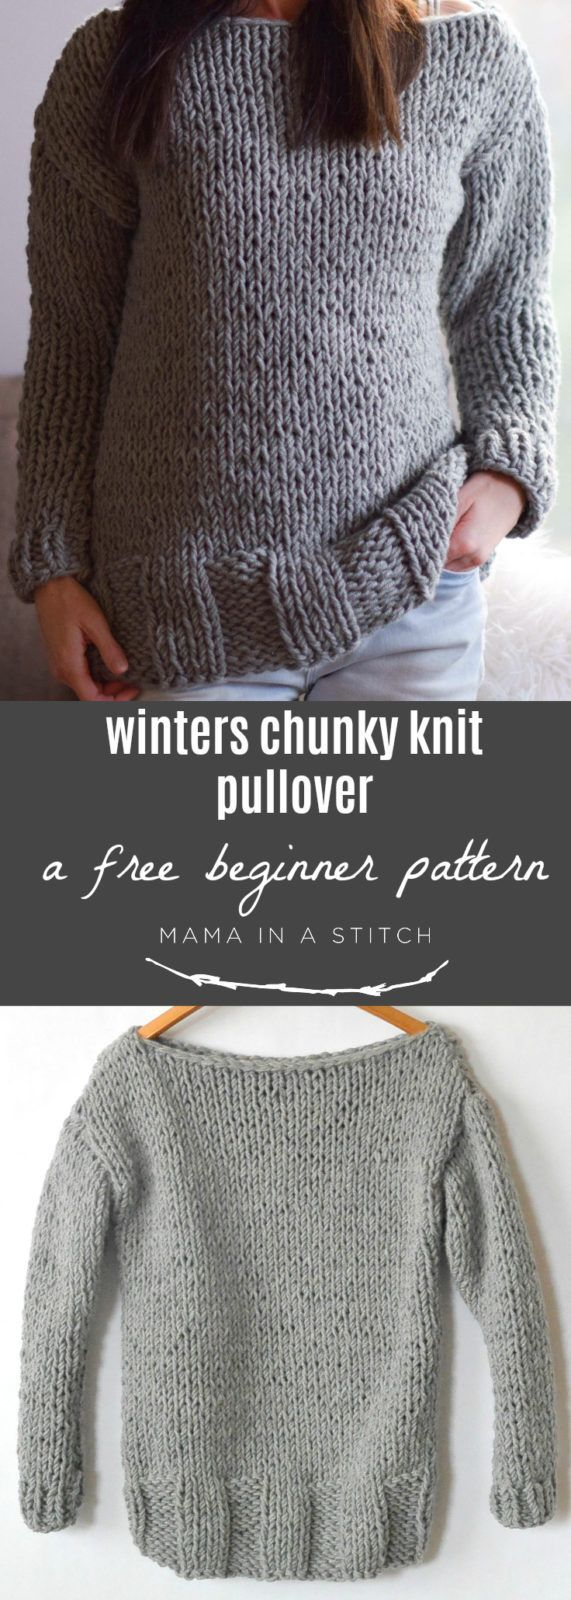 Winters Chunky Easy Knit Pullover Pattern Knitting Patterns Free